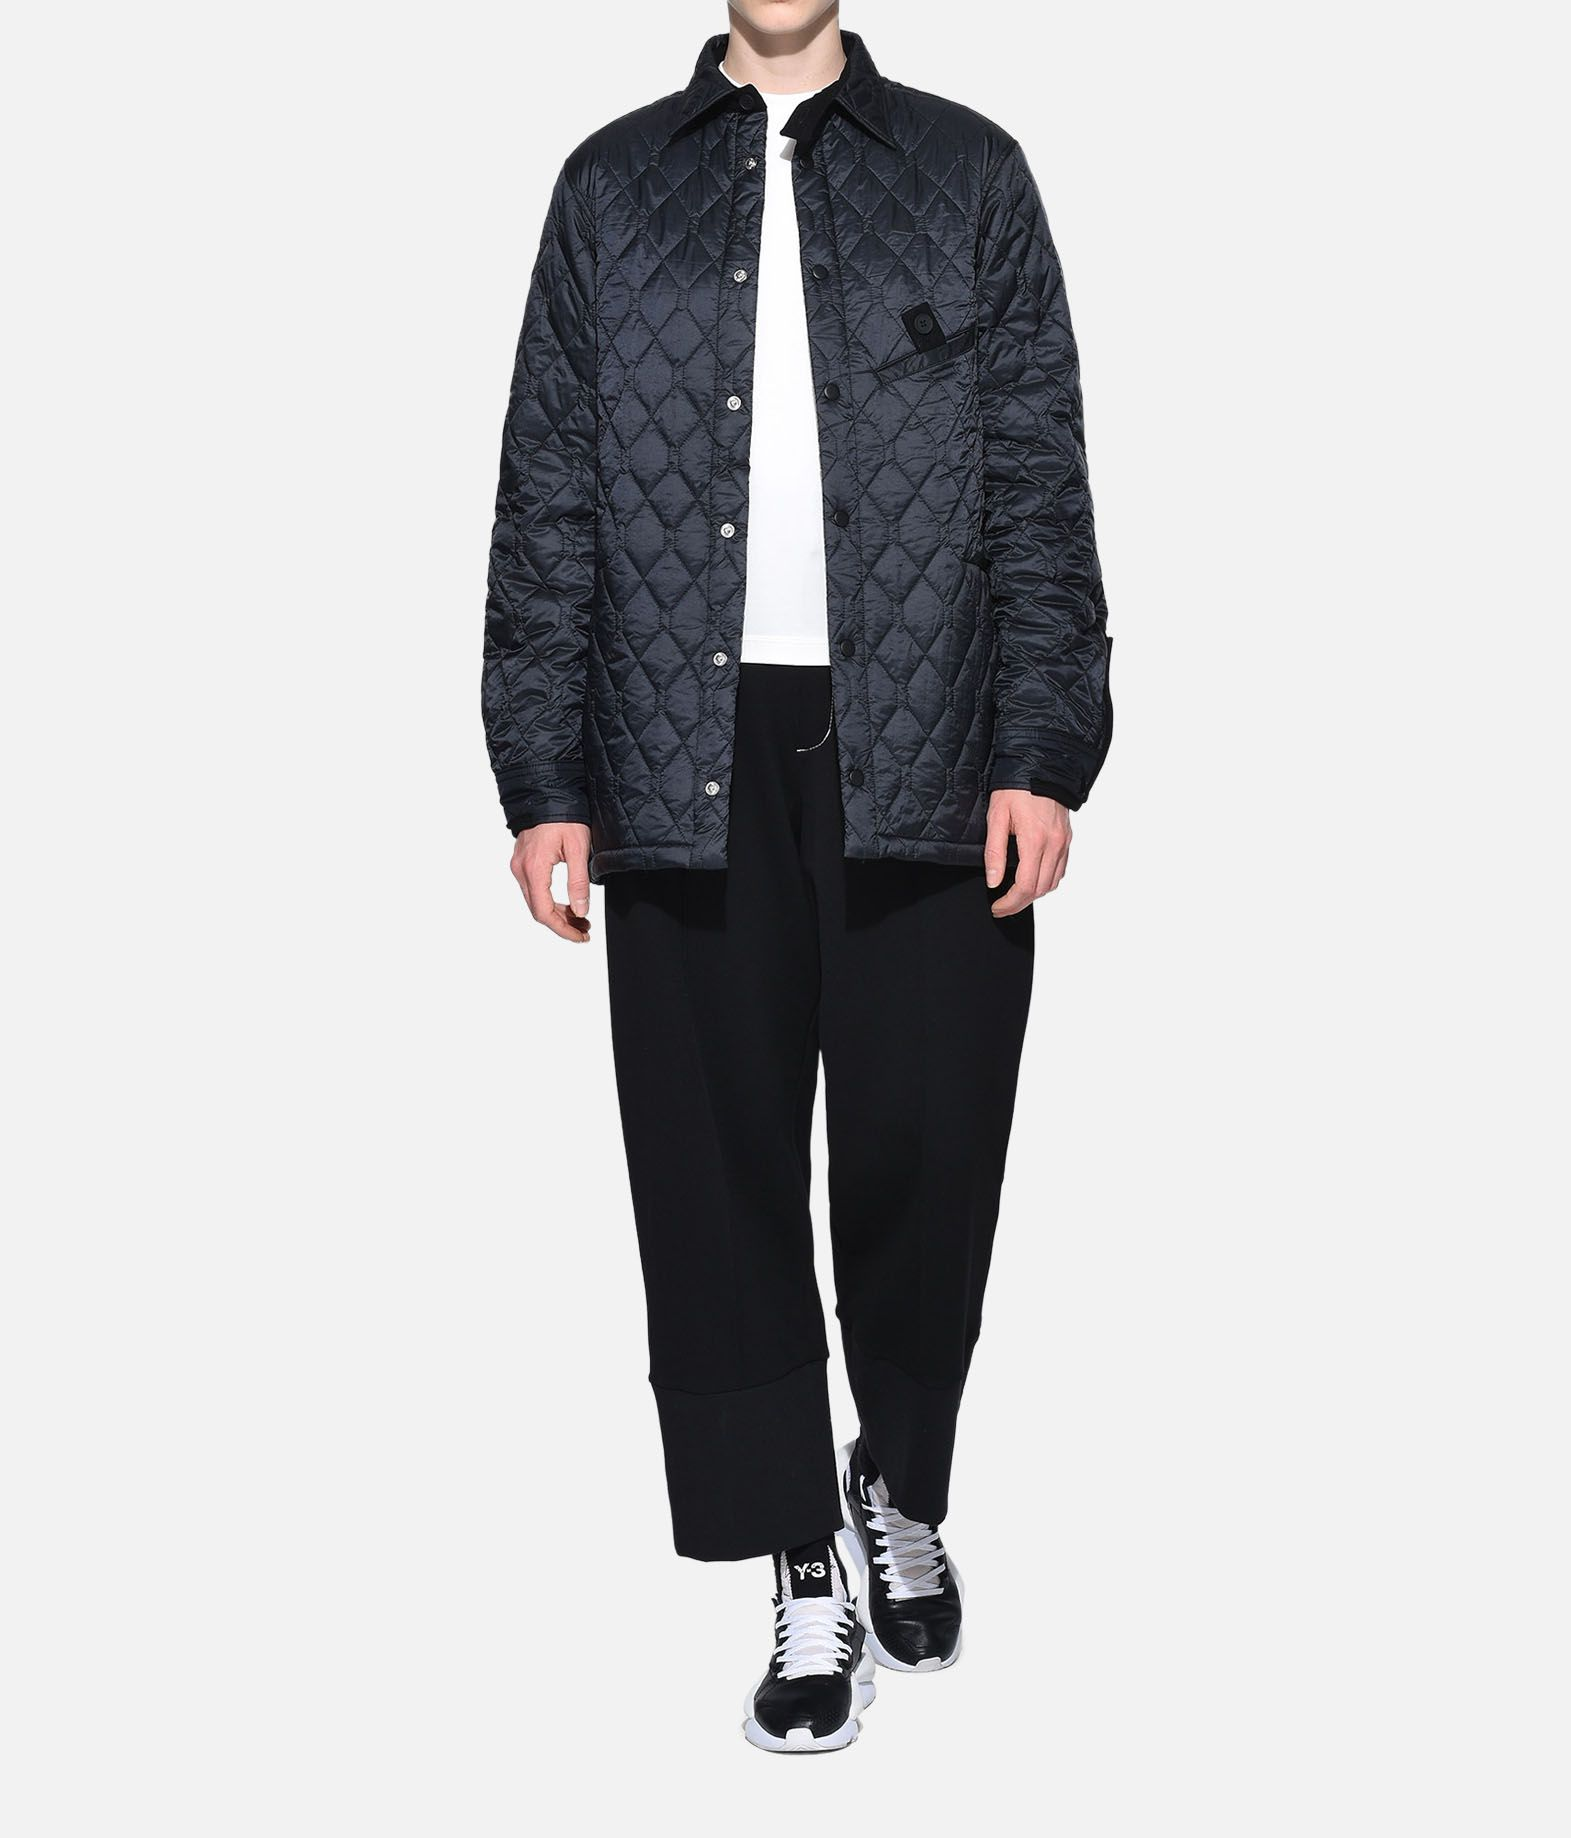 Y-3 Y-3 Quilted Shirt Camicia maniche lunghe Donna a